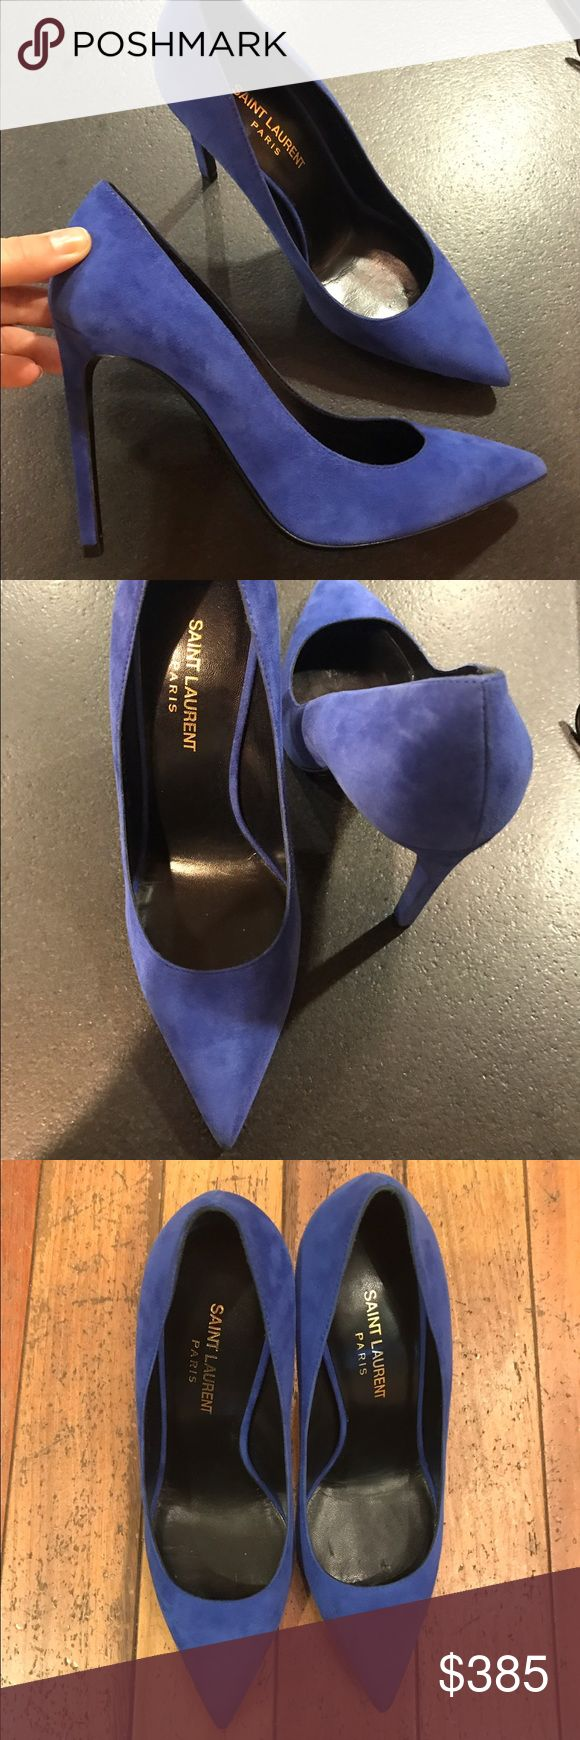 NEW! Auth YSL blue suede Pumps sz 38.5/8.5 $895 NEW AUTH YSL SUEDE COBALT blue Pumps sz 38.5/8.5 in excellent new condition! For price offer email lana_egorova@aim.com Saint Laurent Shoes Heels